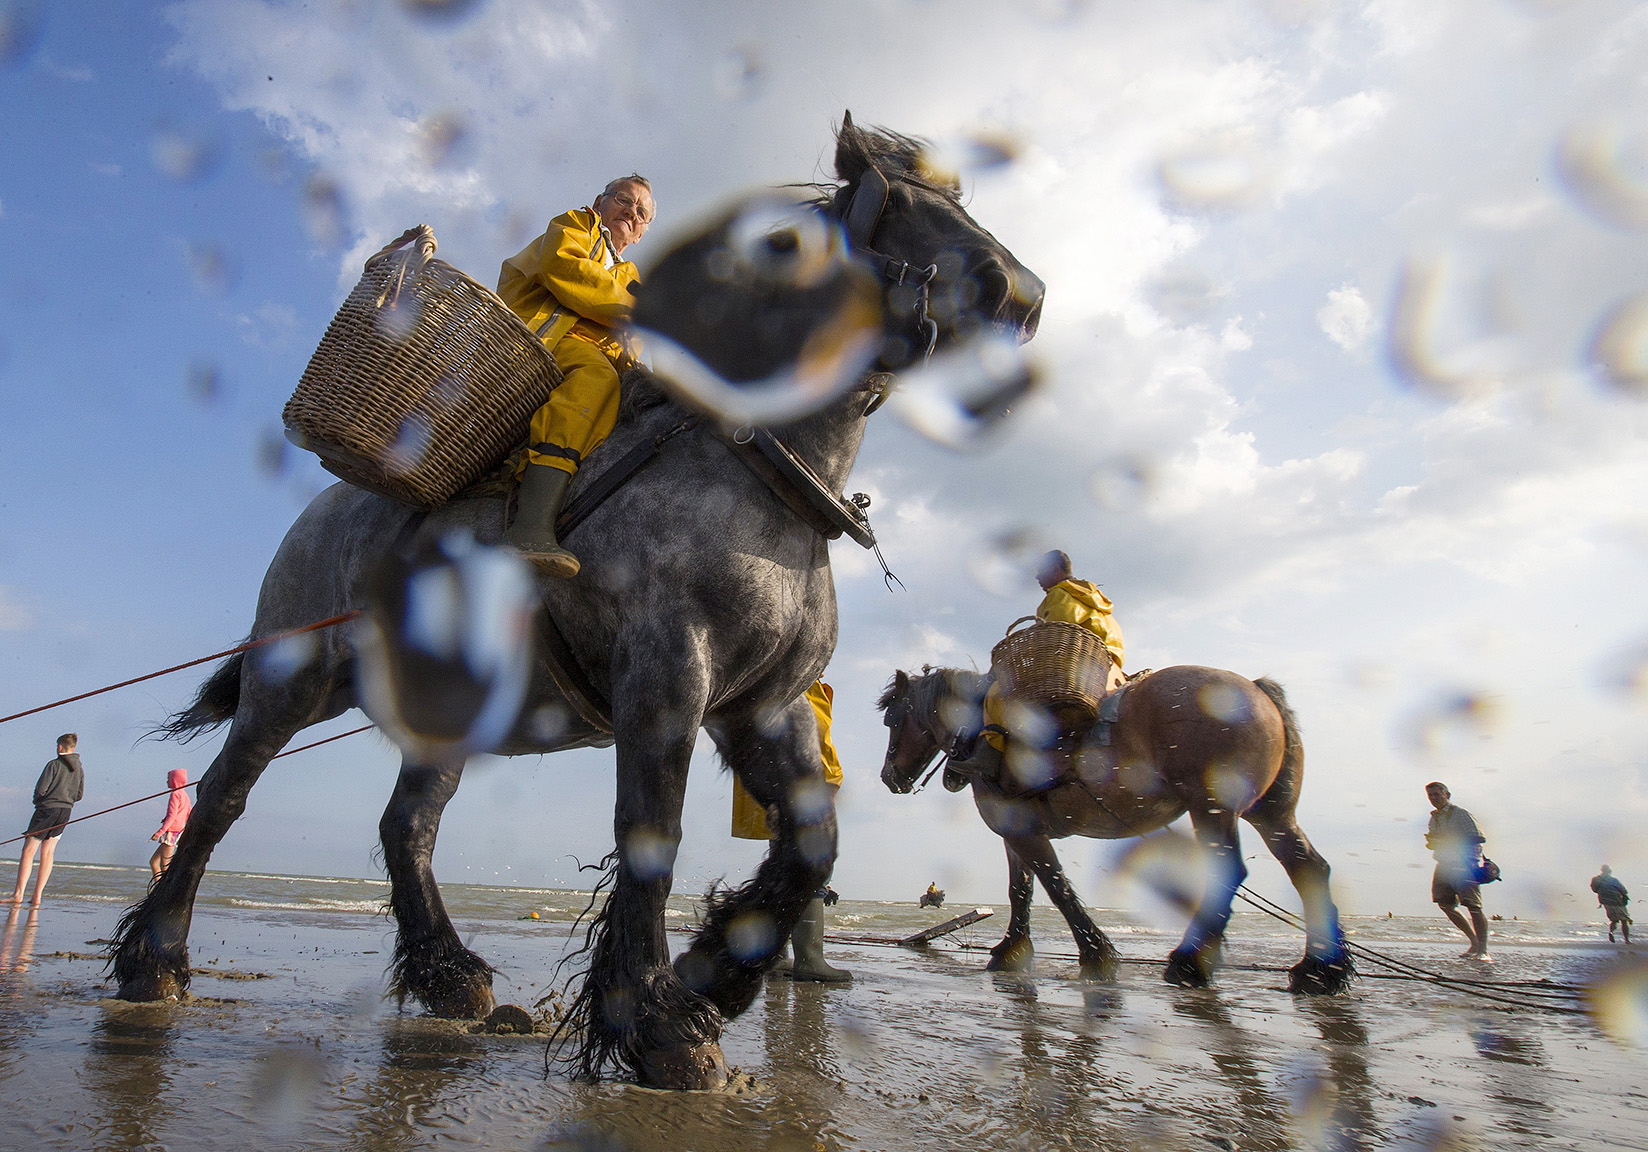 Belgian shrimp fishermen ride carthorses to haul nets out in the sea to catch shrimps during low tide at the coastal town of Oostduinkerke